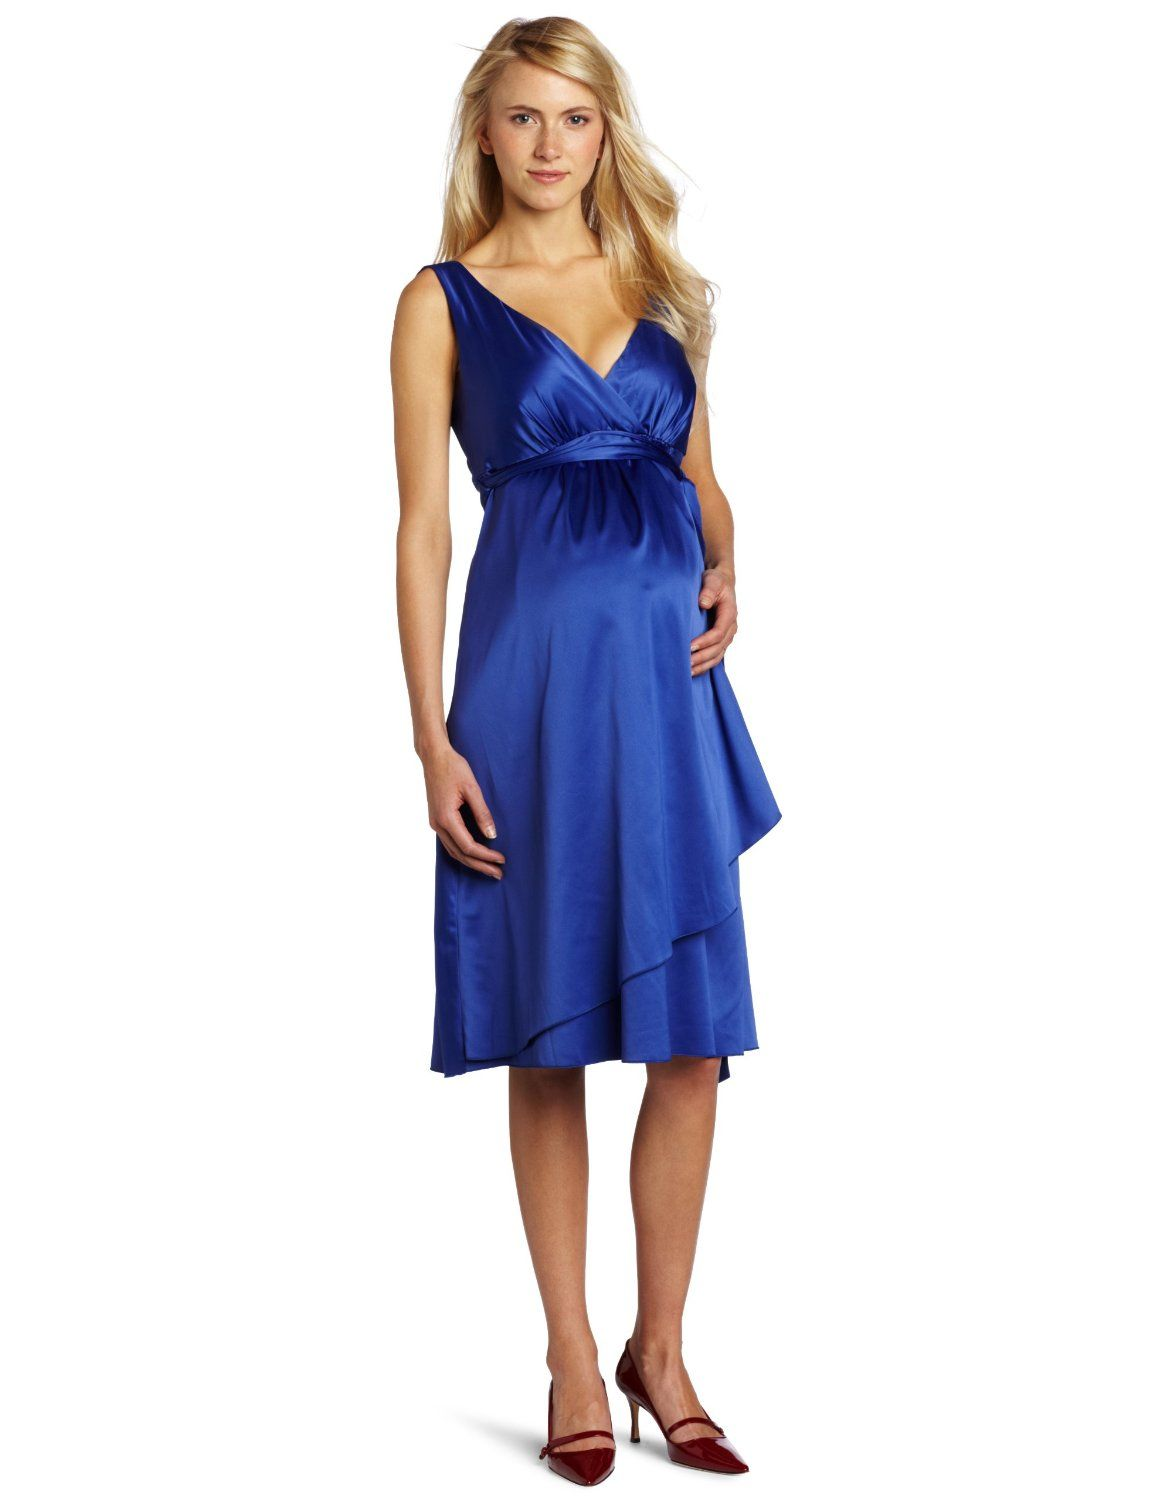 Maternity dress for wedding guest  blue maternity dress Ripe Maternity image  Maternity Fashion